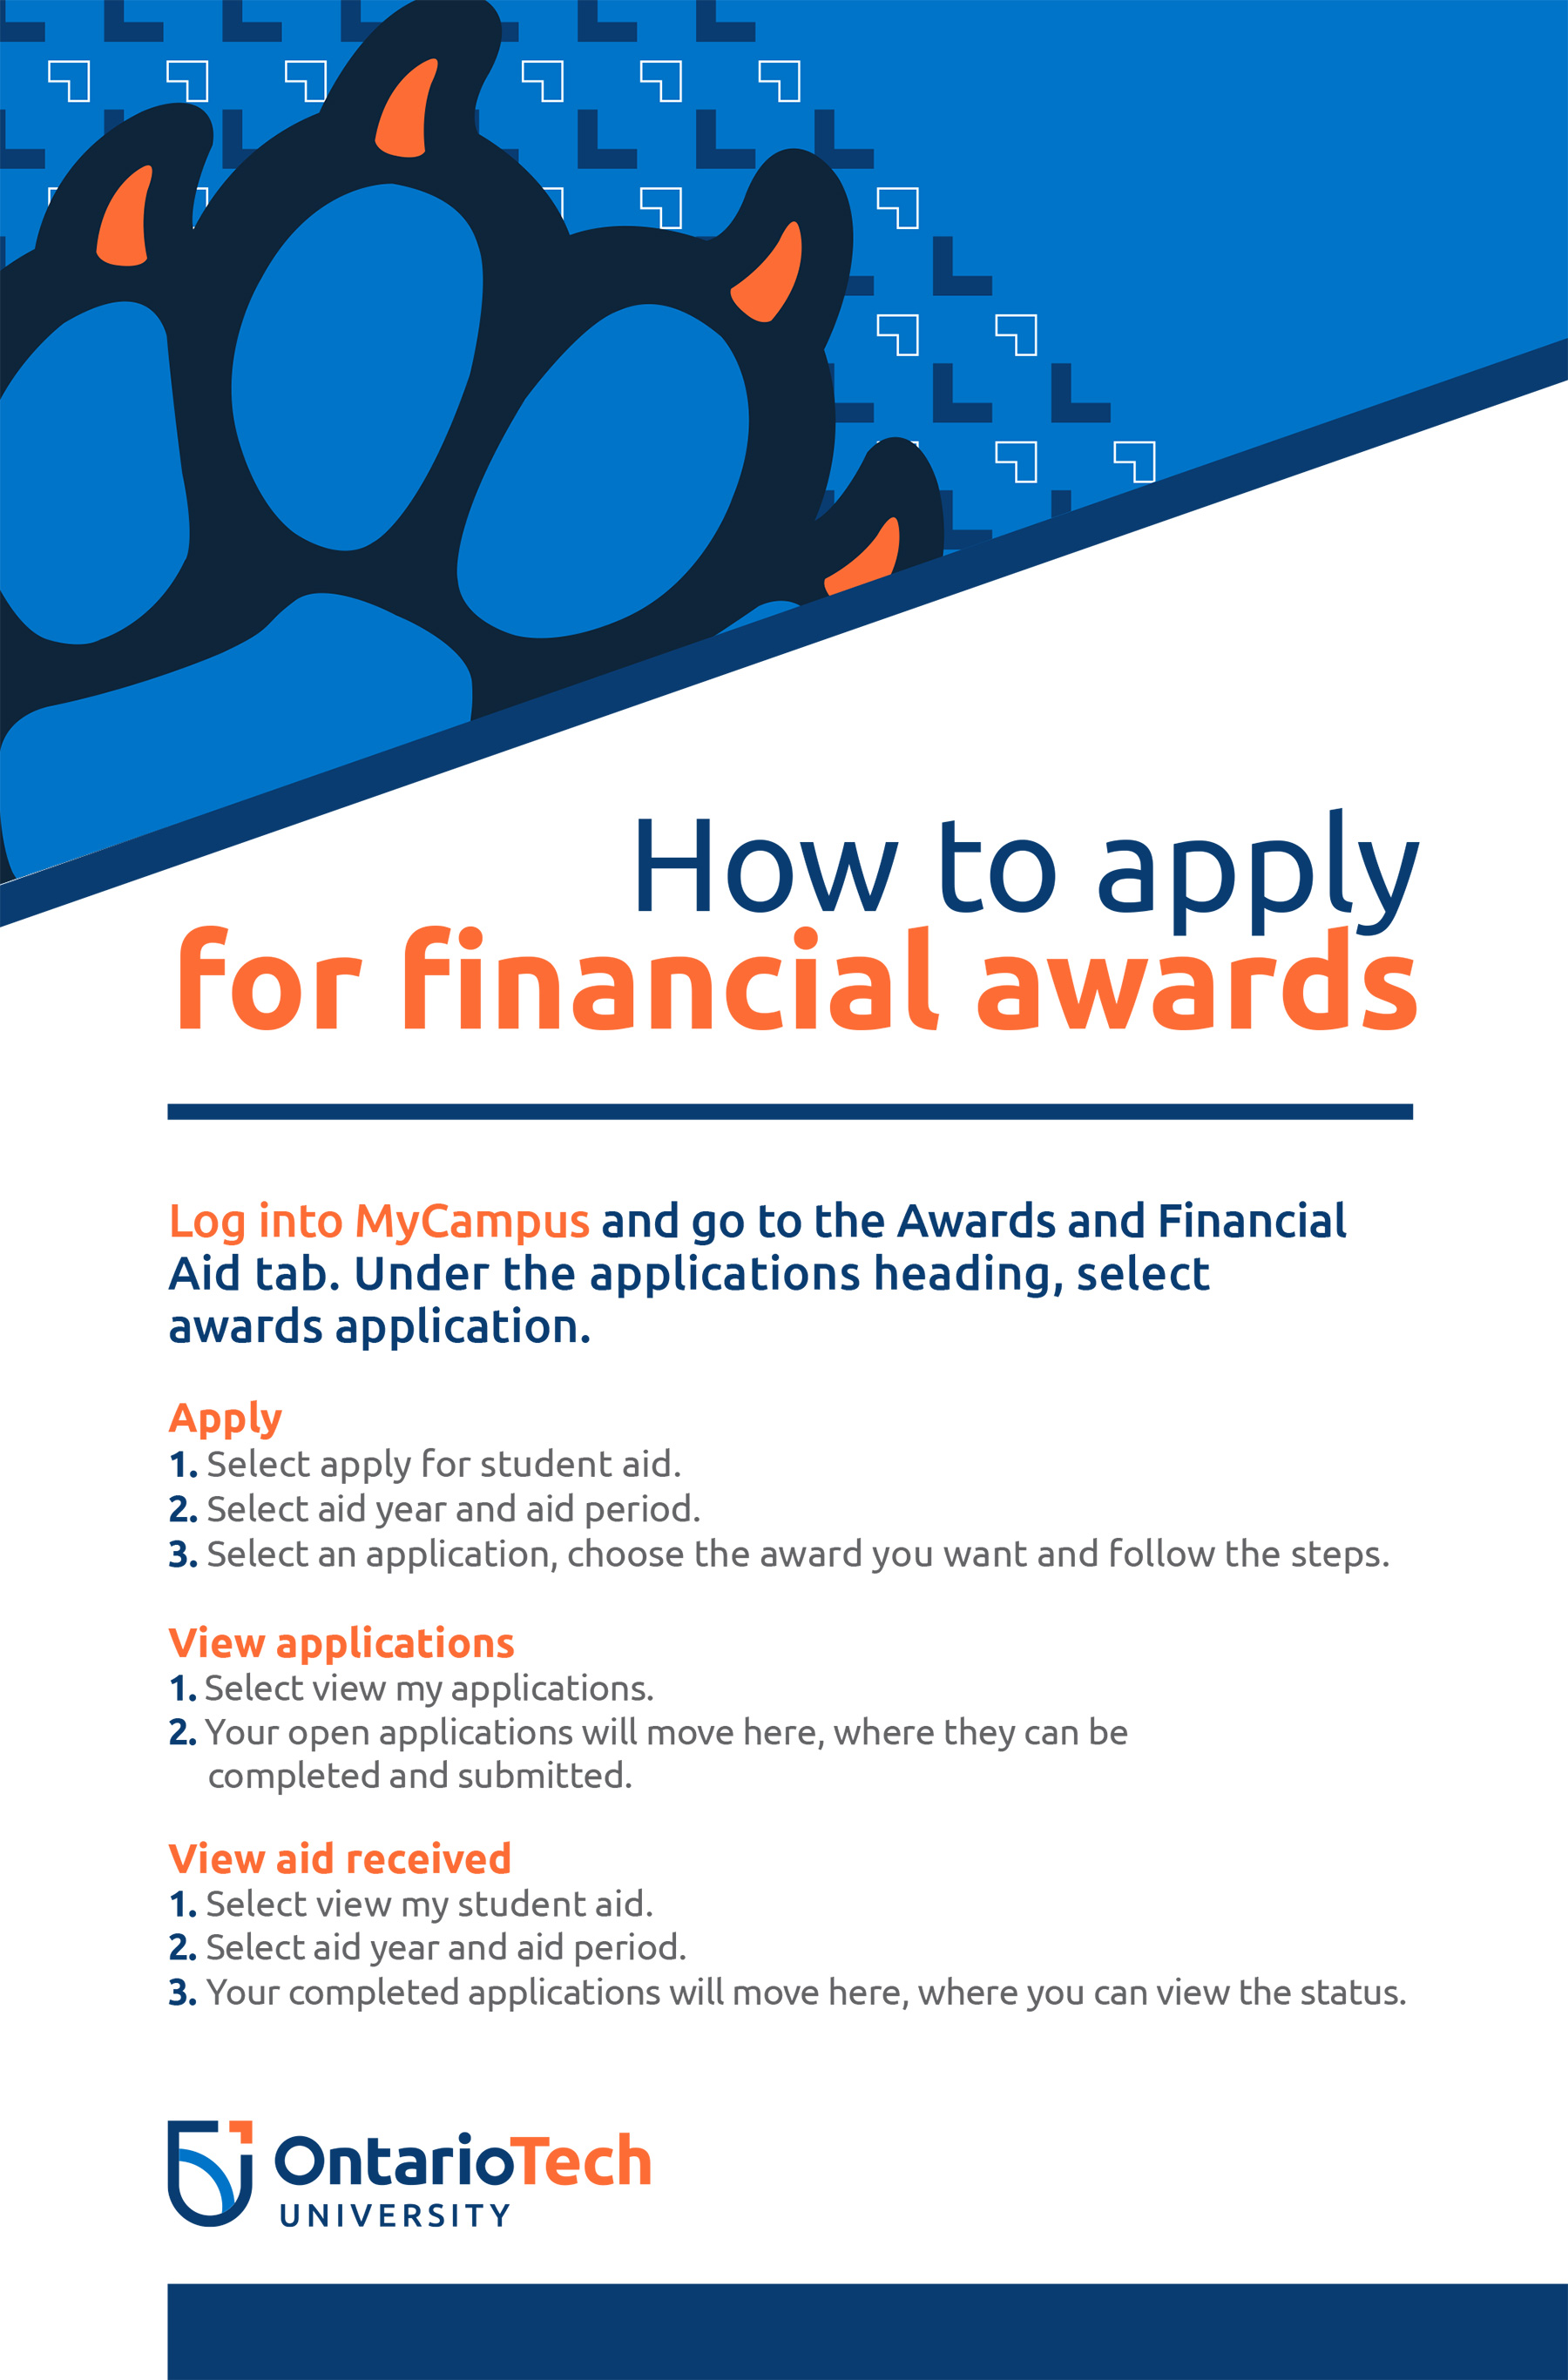 how to apply for financial awards